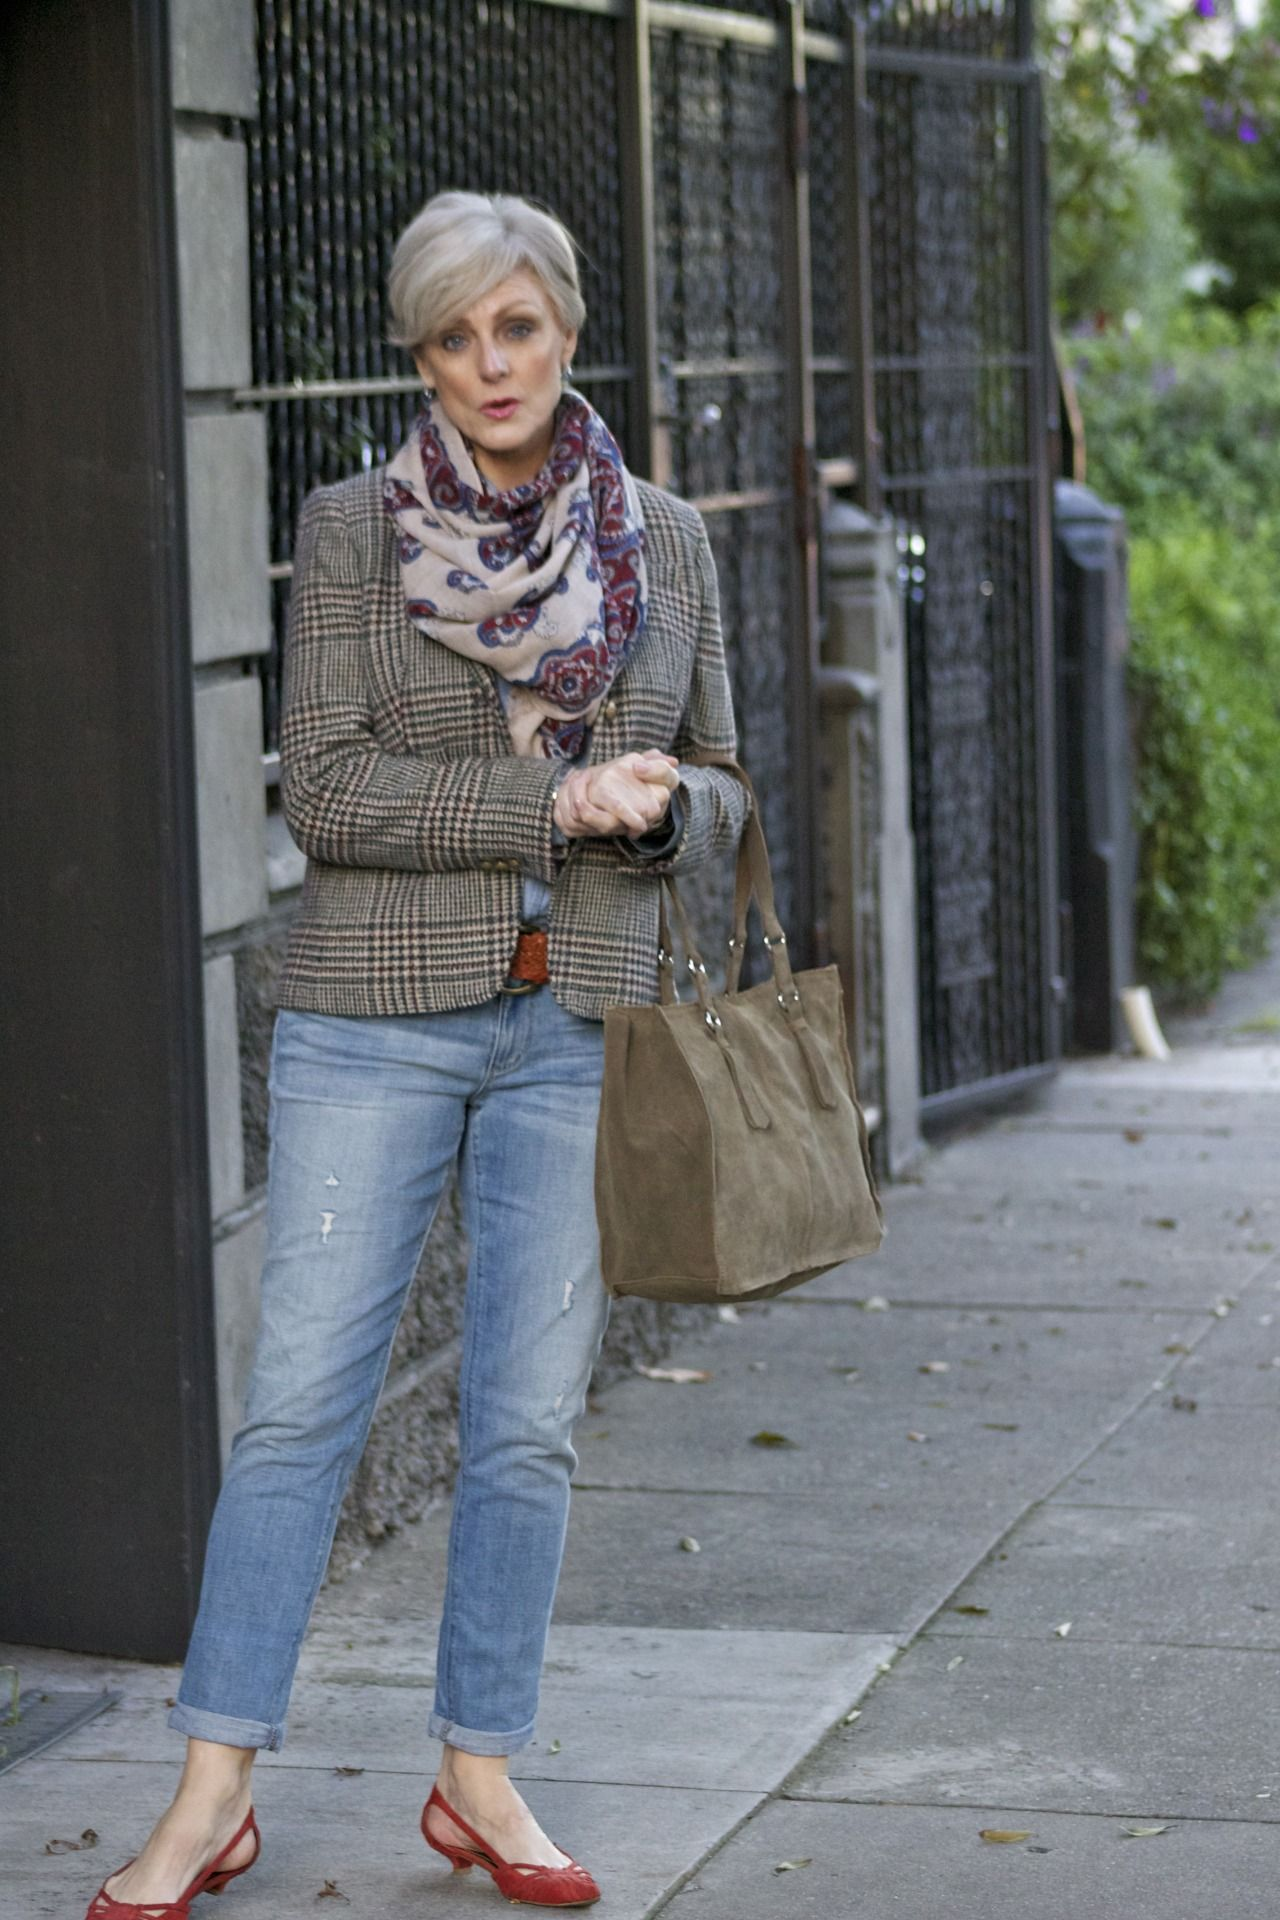 tomboy chic | style at a certain age #overfiftyblogger ...